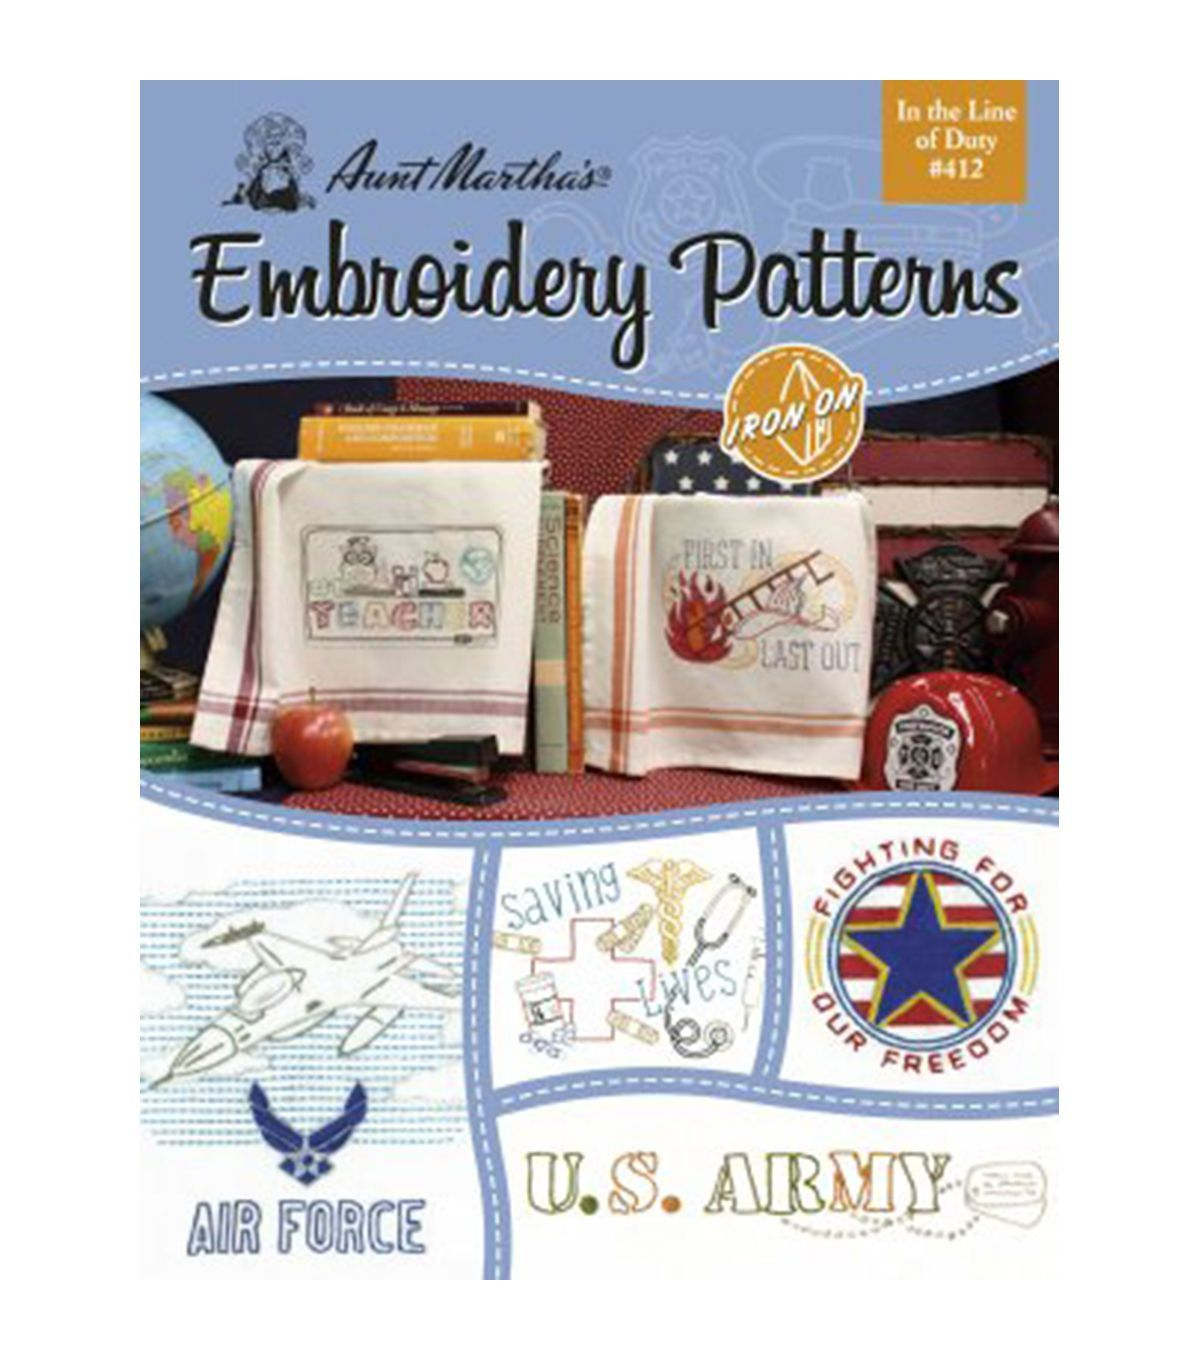 Aunt marthas in the line of duty embroidery patterns book aunt marthas in the line of duty embroidery patterns book bankloansurffo Image collections